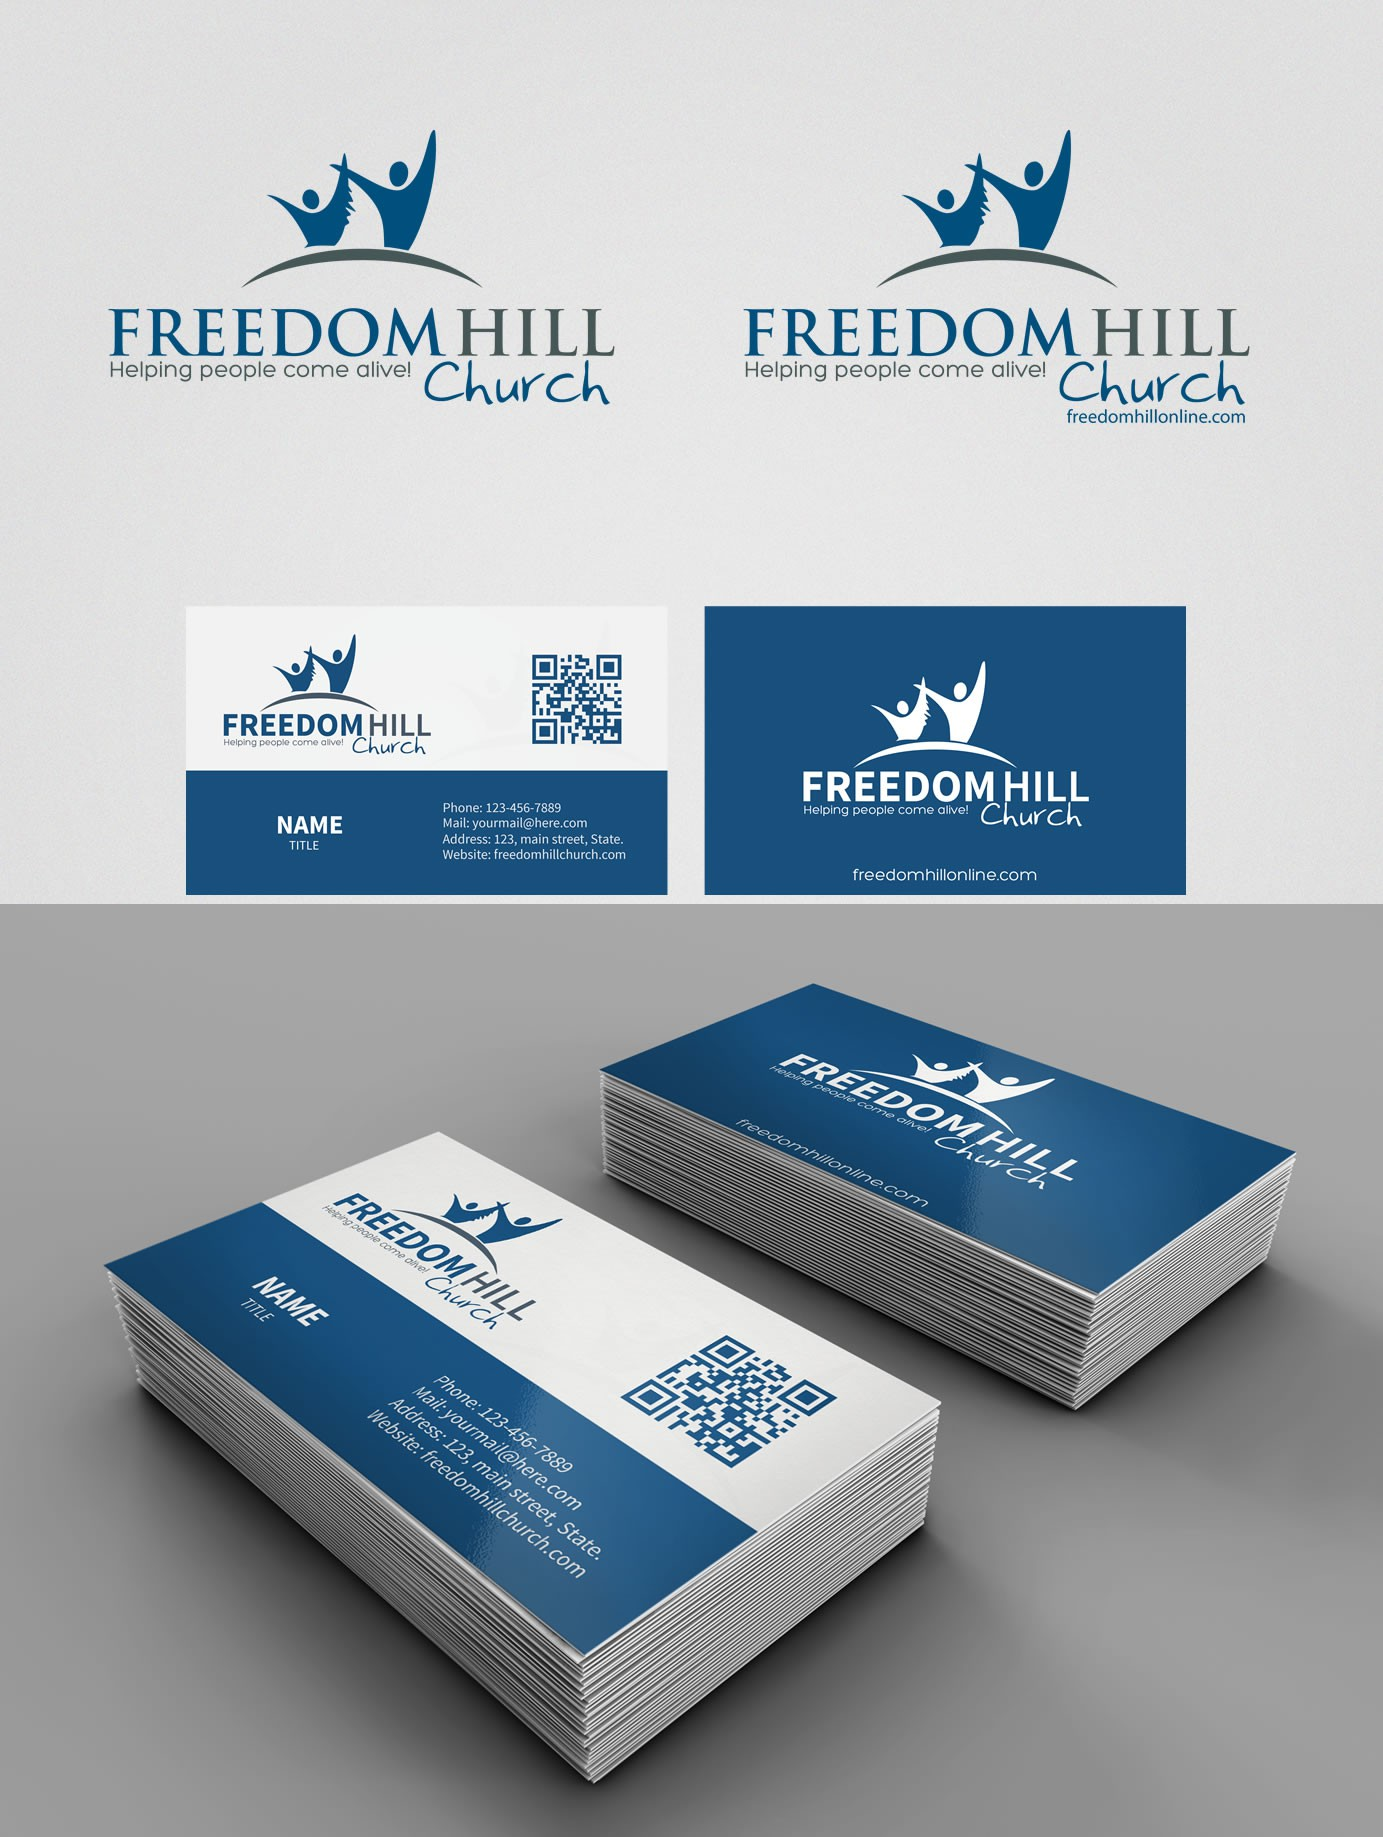 Create the next logo for Freedom Hill Church